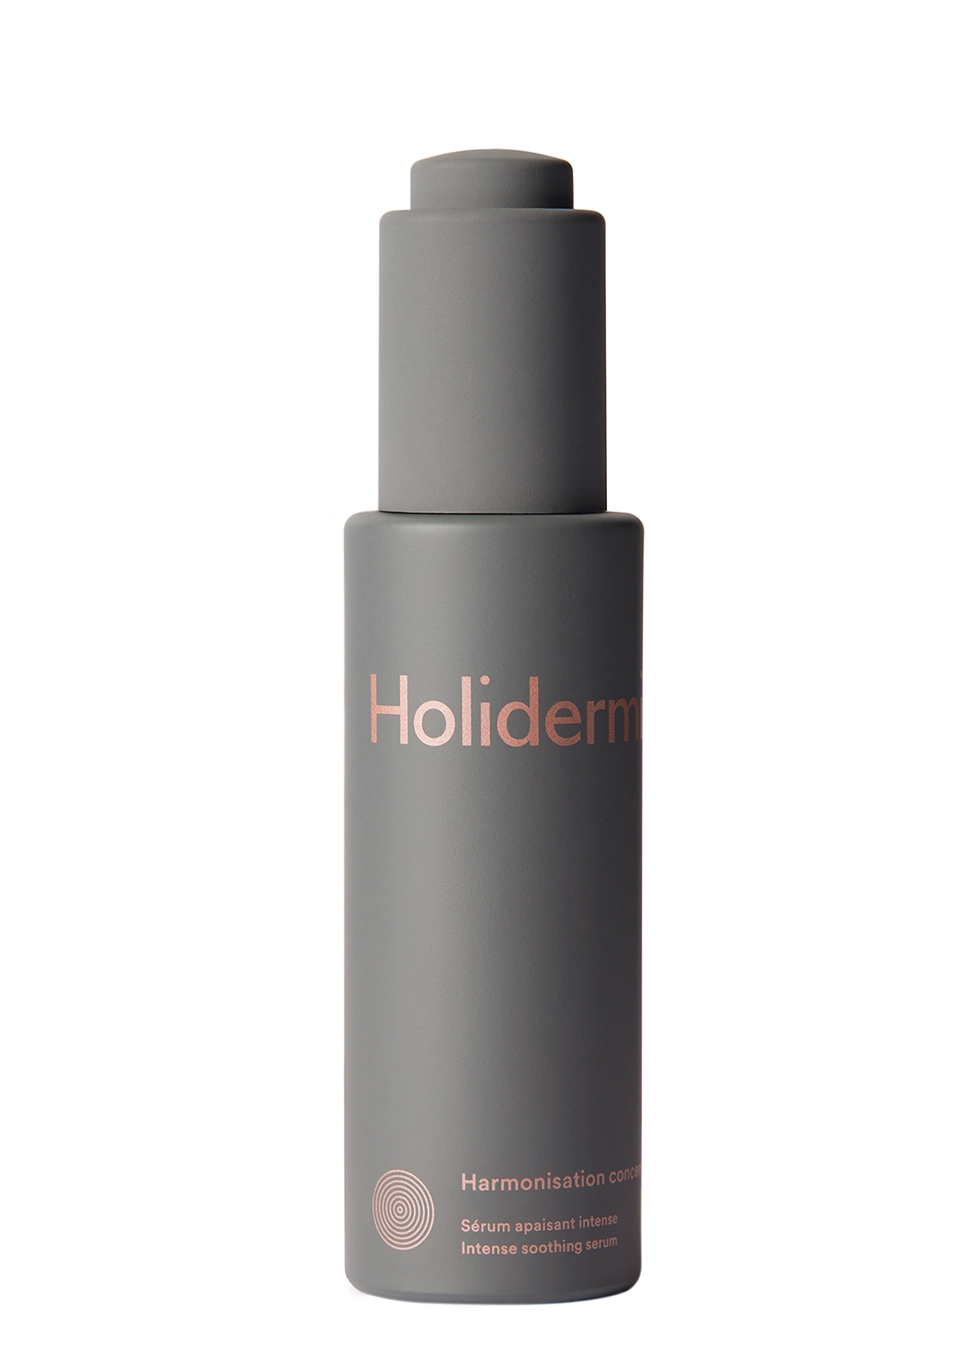 Harmonisation Concentre e Intense Soothing Serum 30ml